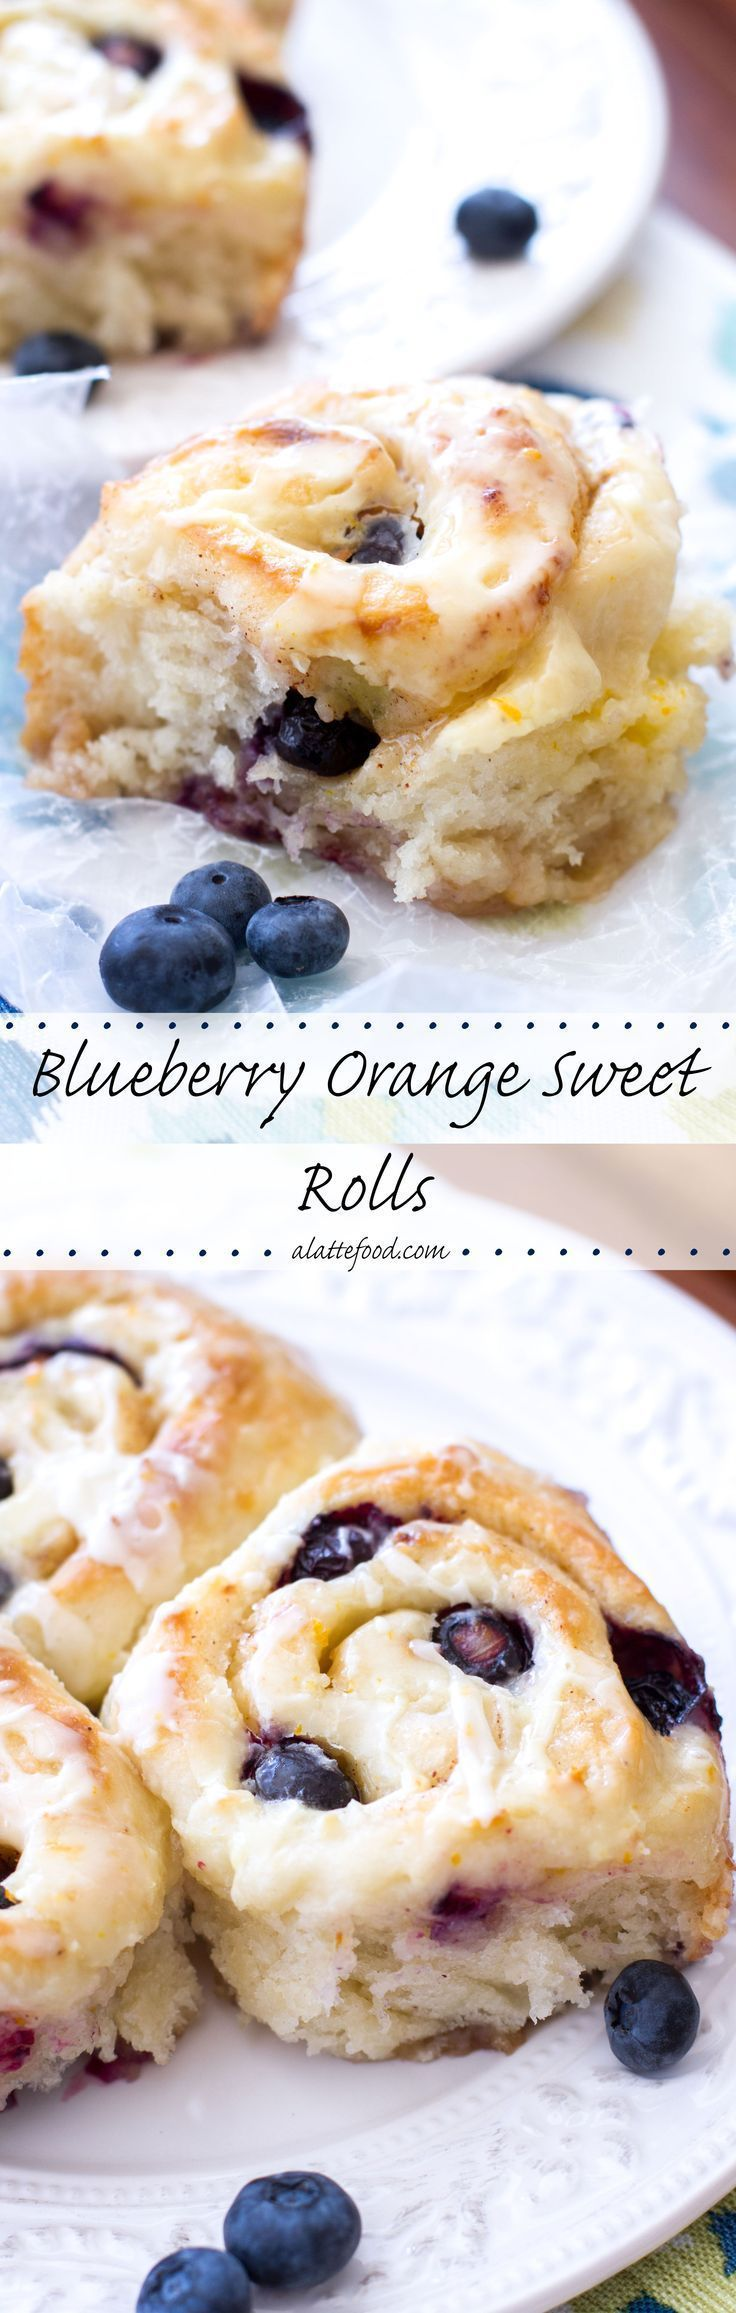 These gooey blueberry orange sweet rolls are so delicious and so easy to put together! | www.alattefood.com/